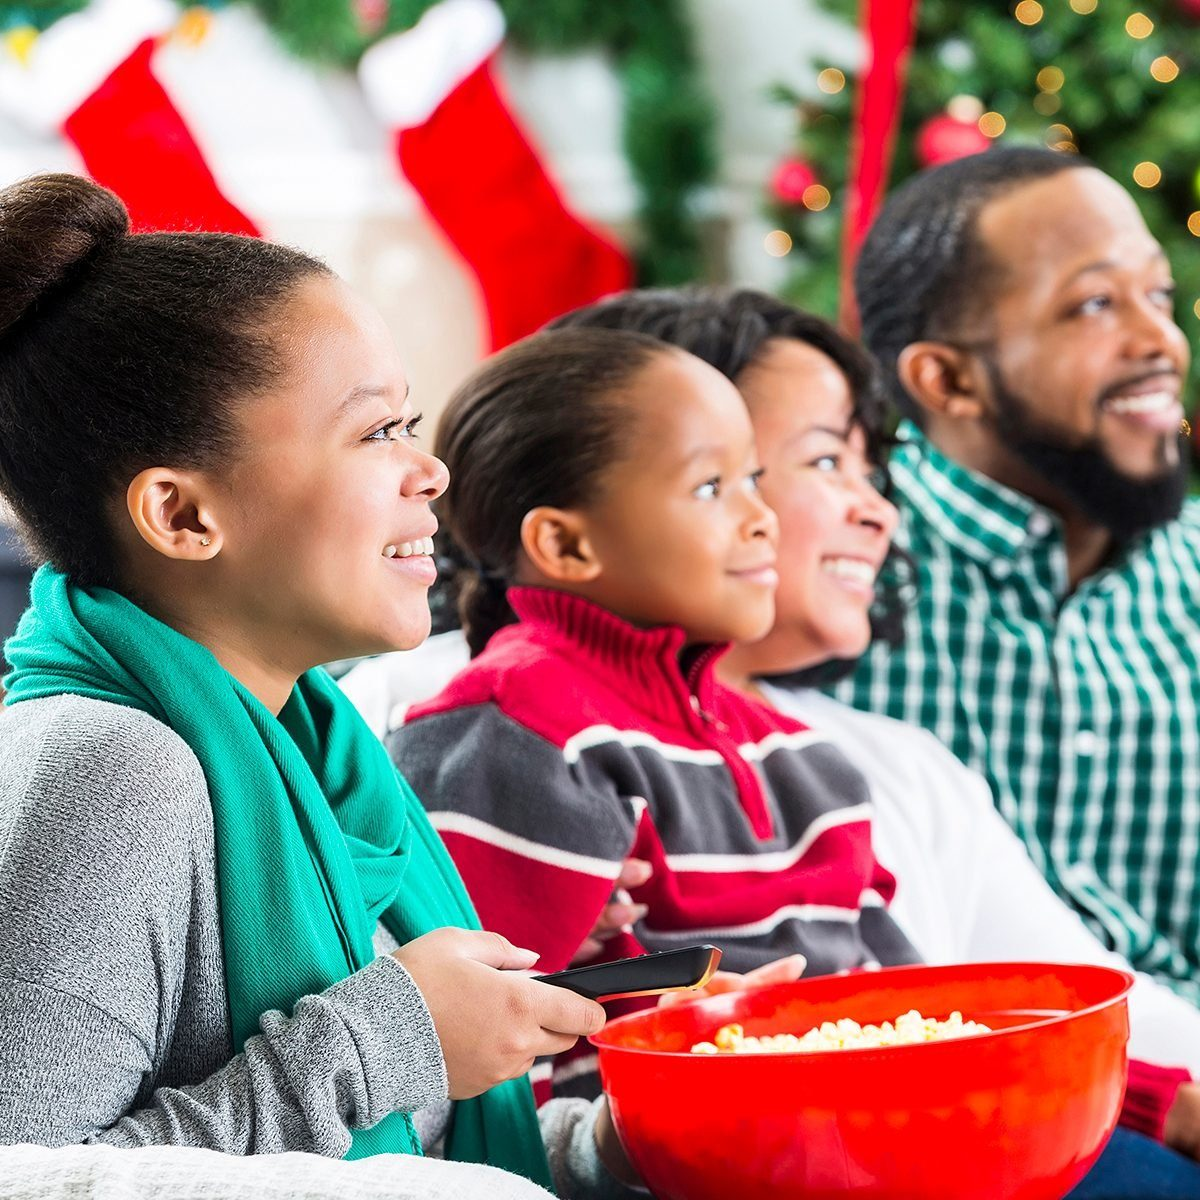 Happy African American couple and their teenage daughter and elementary age son watch a Christmas movie together during the Christmas season. The girl is holding a bowl of popcorn and the remote control. They are all smiling while watching the movie. A Christmas tree, stockings and a fireplace are in the background.